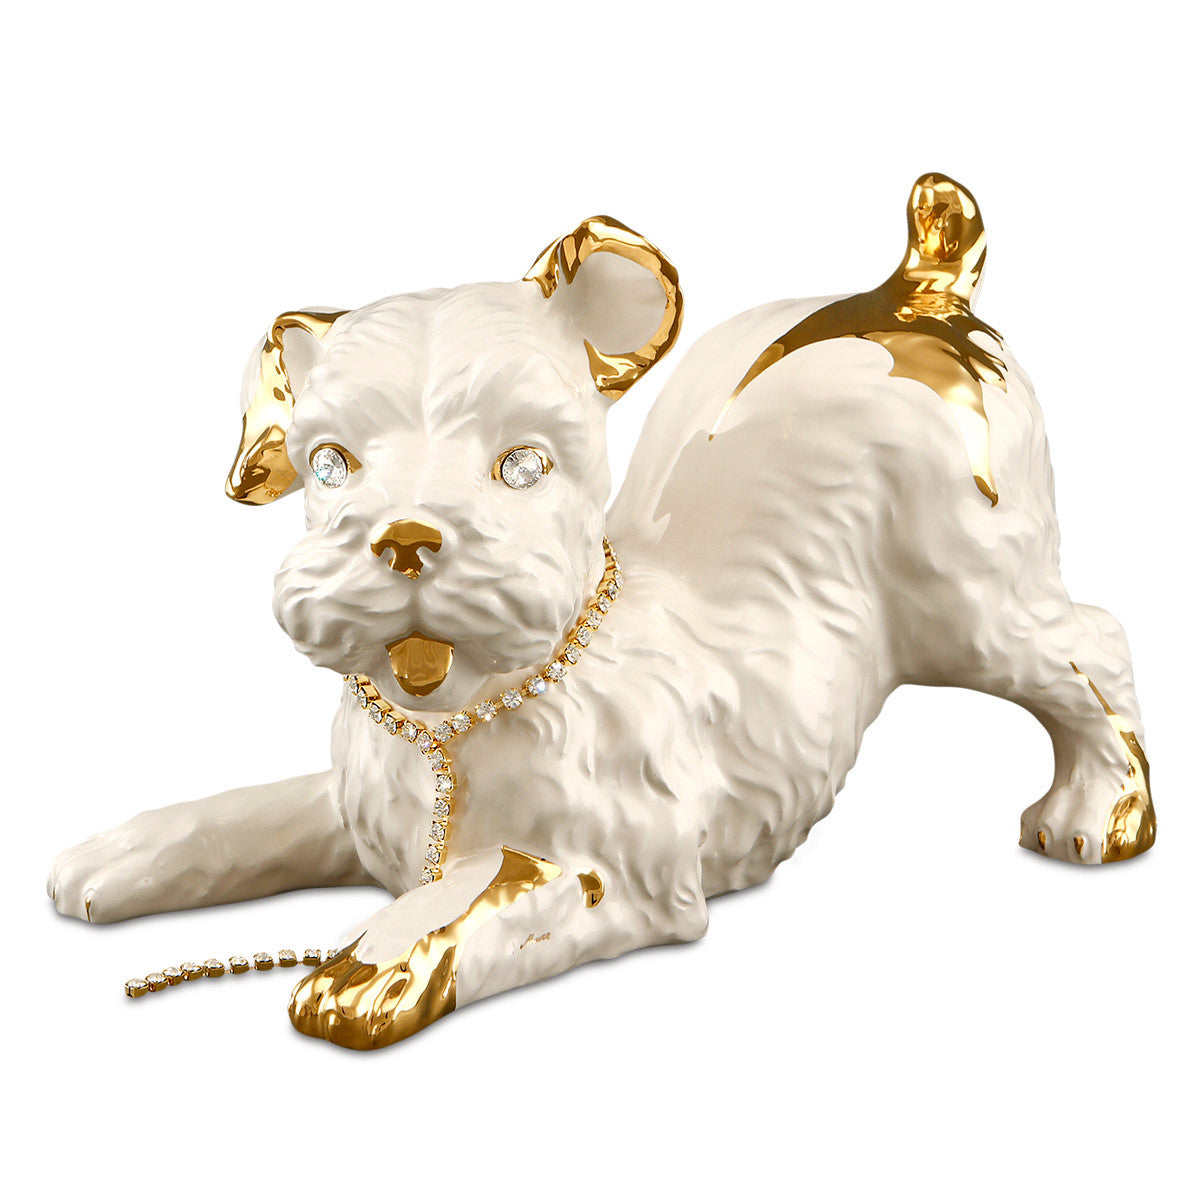 Ceramic playful scottish terrier statue in pure gold with Swarovski handmade in Italy